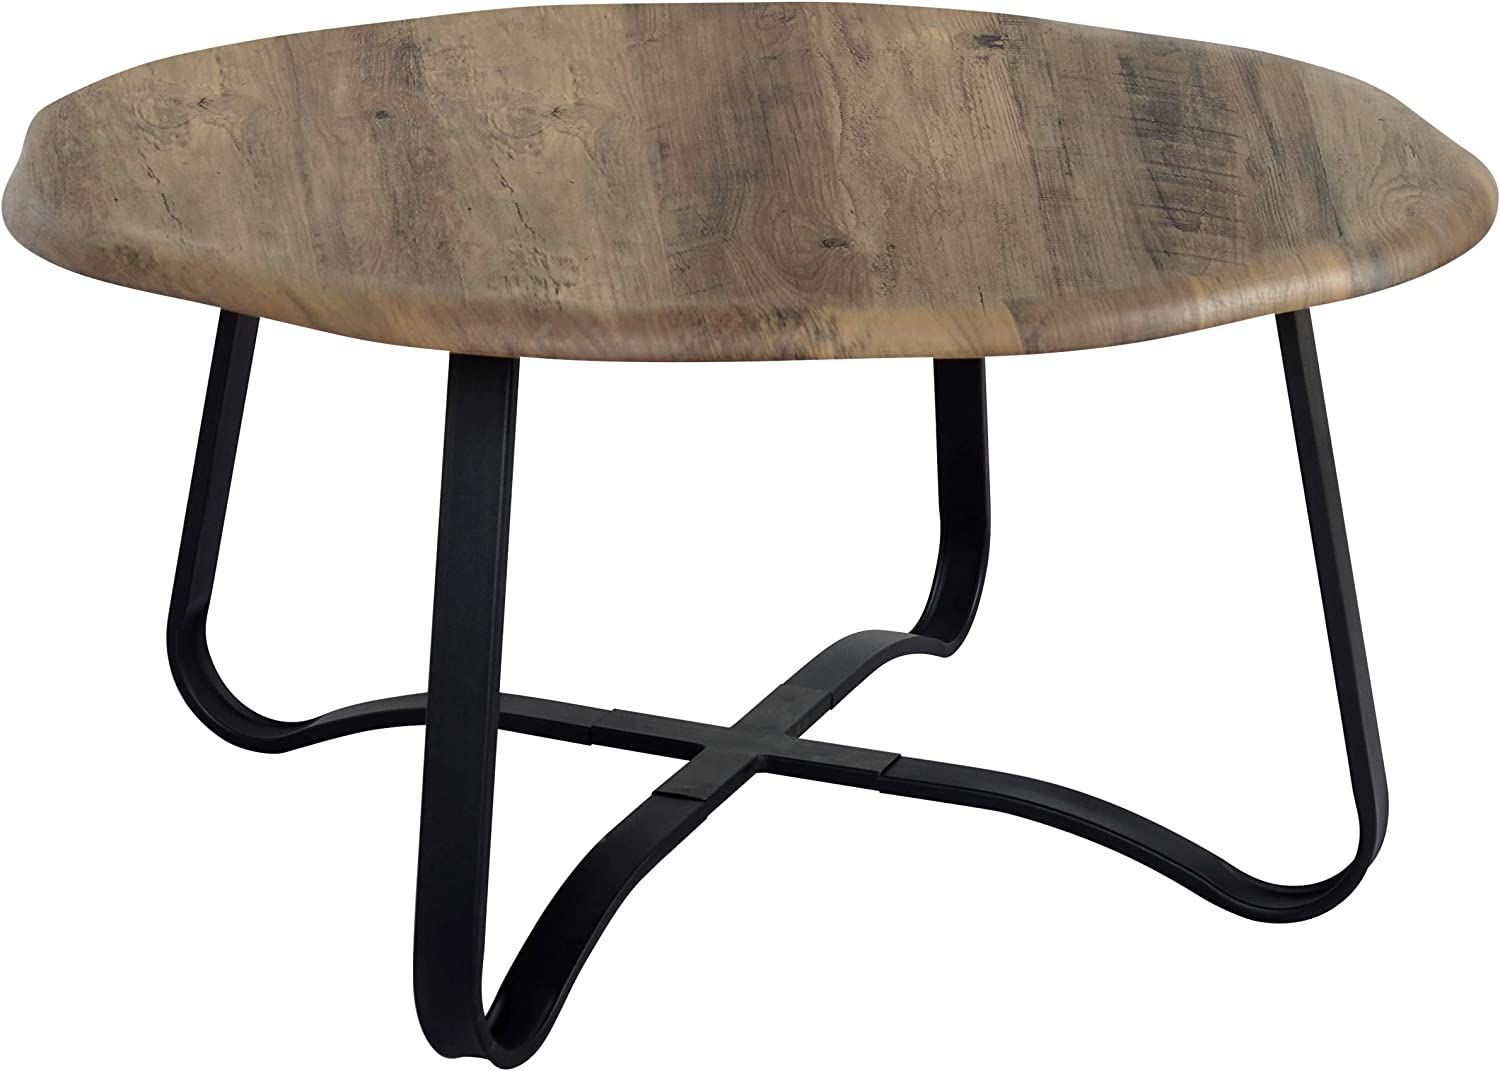 """FINECASA Accent Coffee Table, Irregular Table Top Coffee Table with Cross Rack, Sofa Table, Office Table, Cocktail Table, Center Tables for Living Room Reception Room, 35.4""""Dx18.1""""H, Wood"""